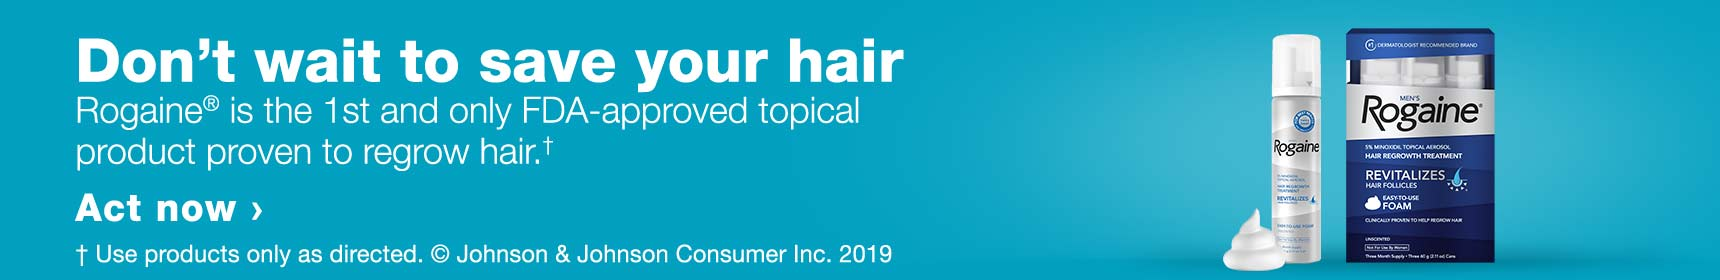 Don't wait to save your hair. Rogaine(R) is the 1st and only FDA-approved topical product proven to regrow hair.† Act now. &dagger Use products only as directed. (C) Johnson & Johnson Consumer Inc. 2019.